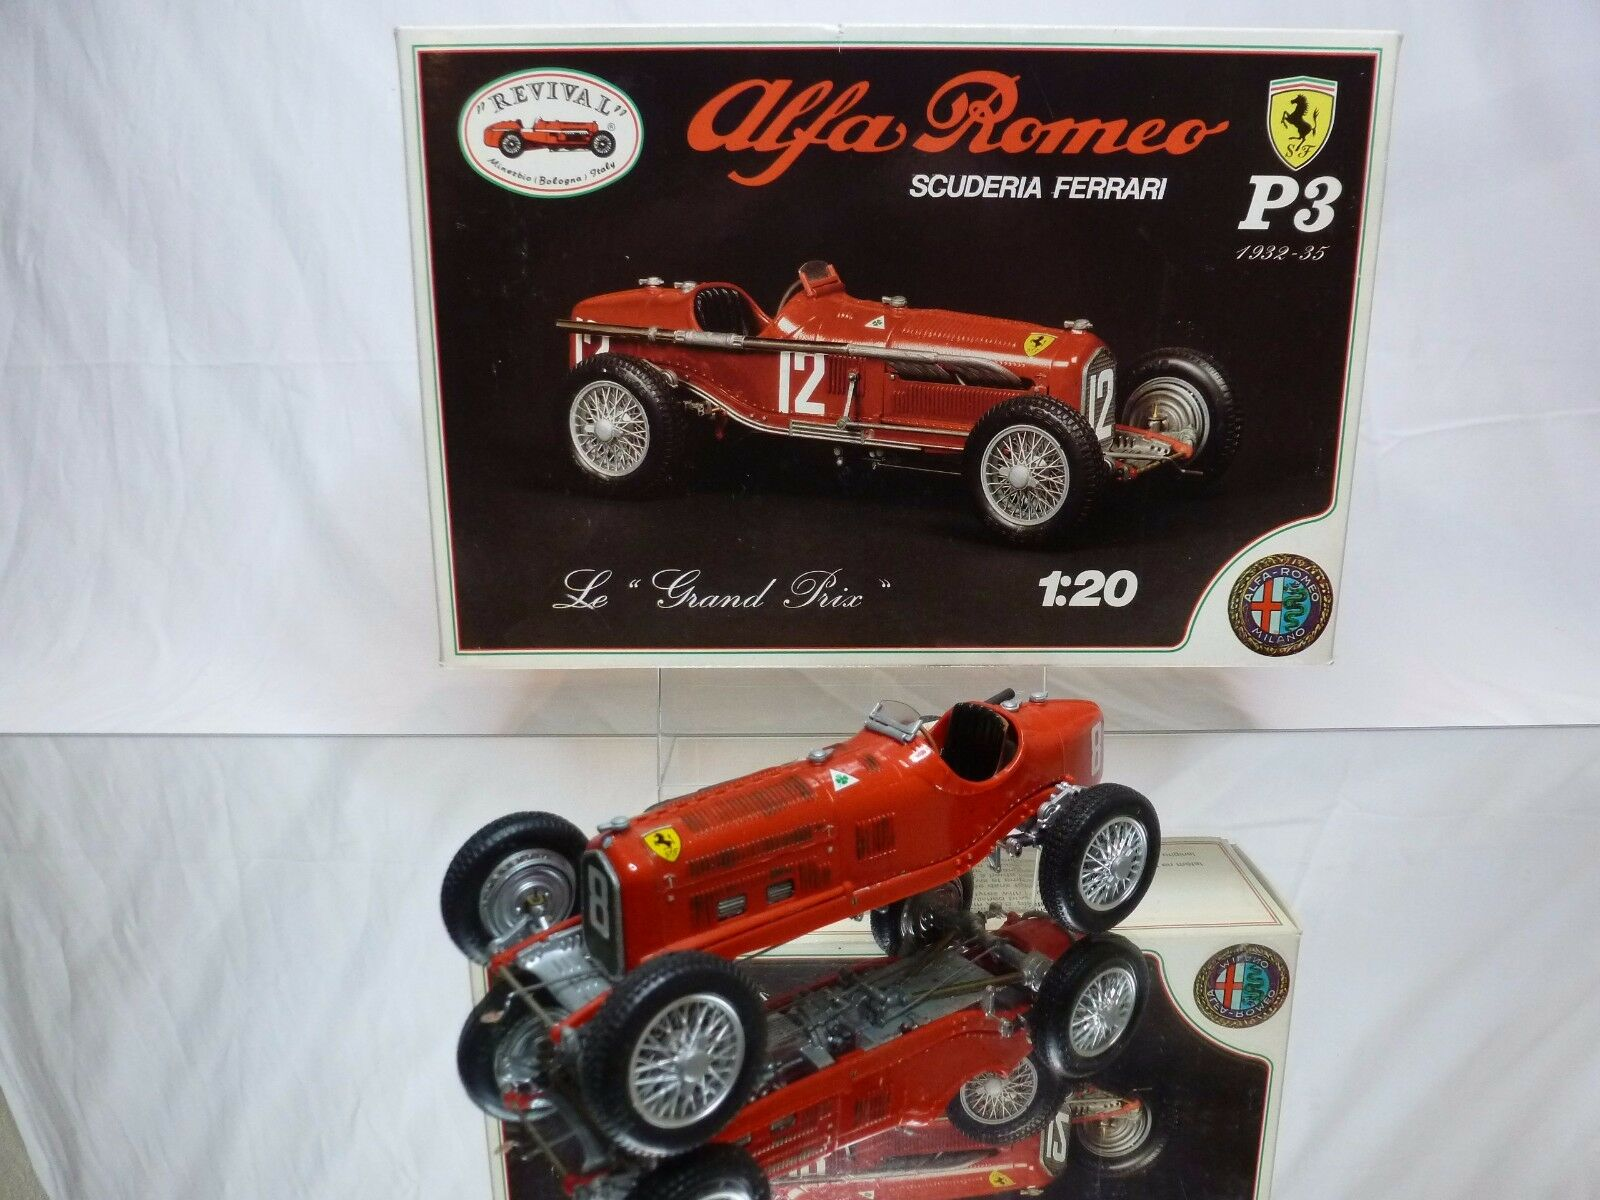 KIT (built) REVIVAL ALFA ROMEO P3 P3 P3 1932-35 - 1 20 - RARE SELTEN - GOOD CONDITION e46c5c